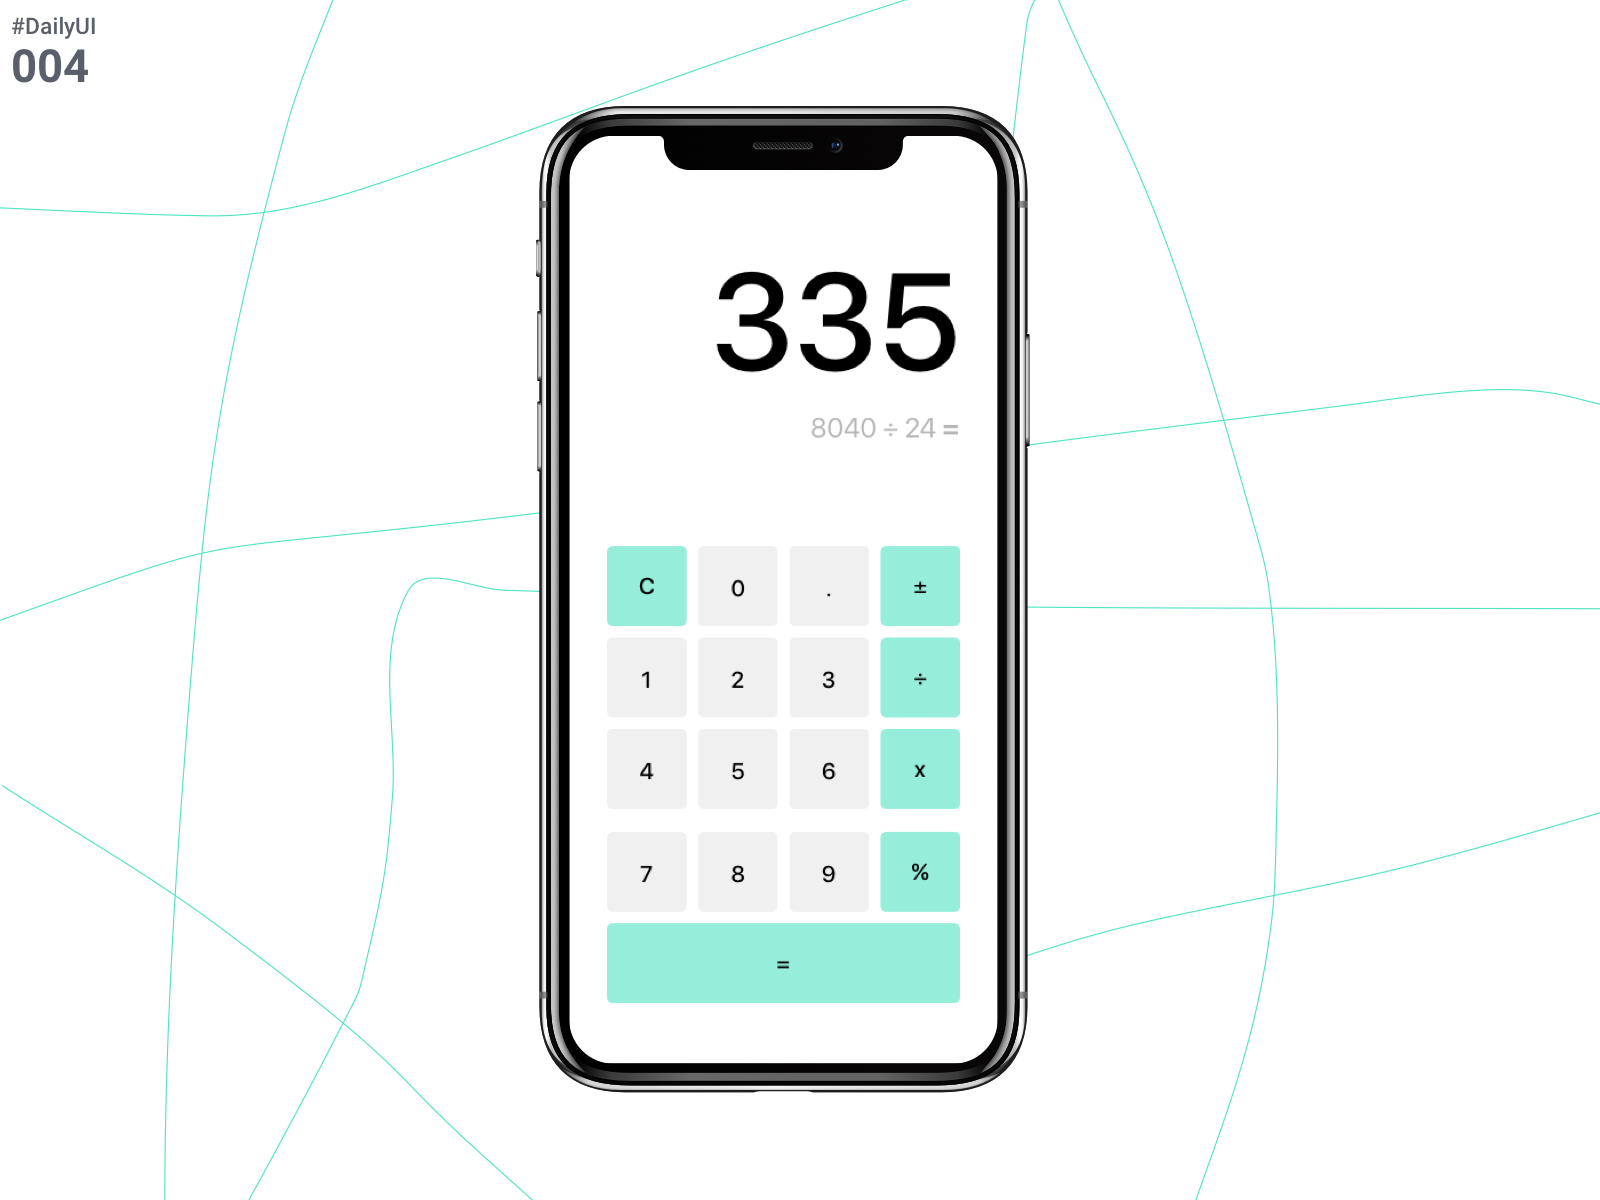 DailyUI Challenge 004 - calculator